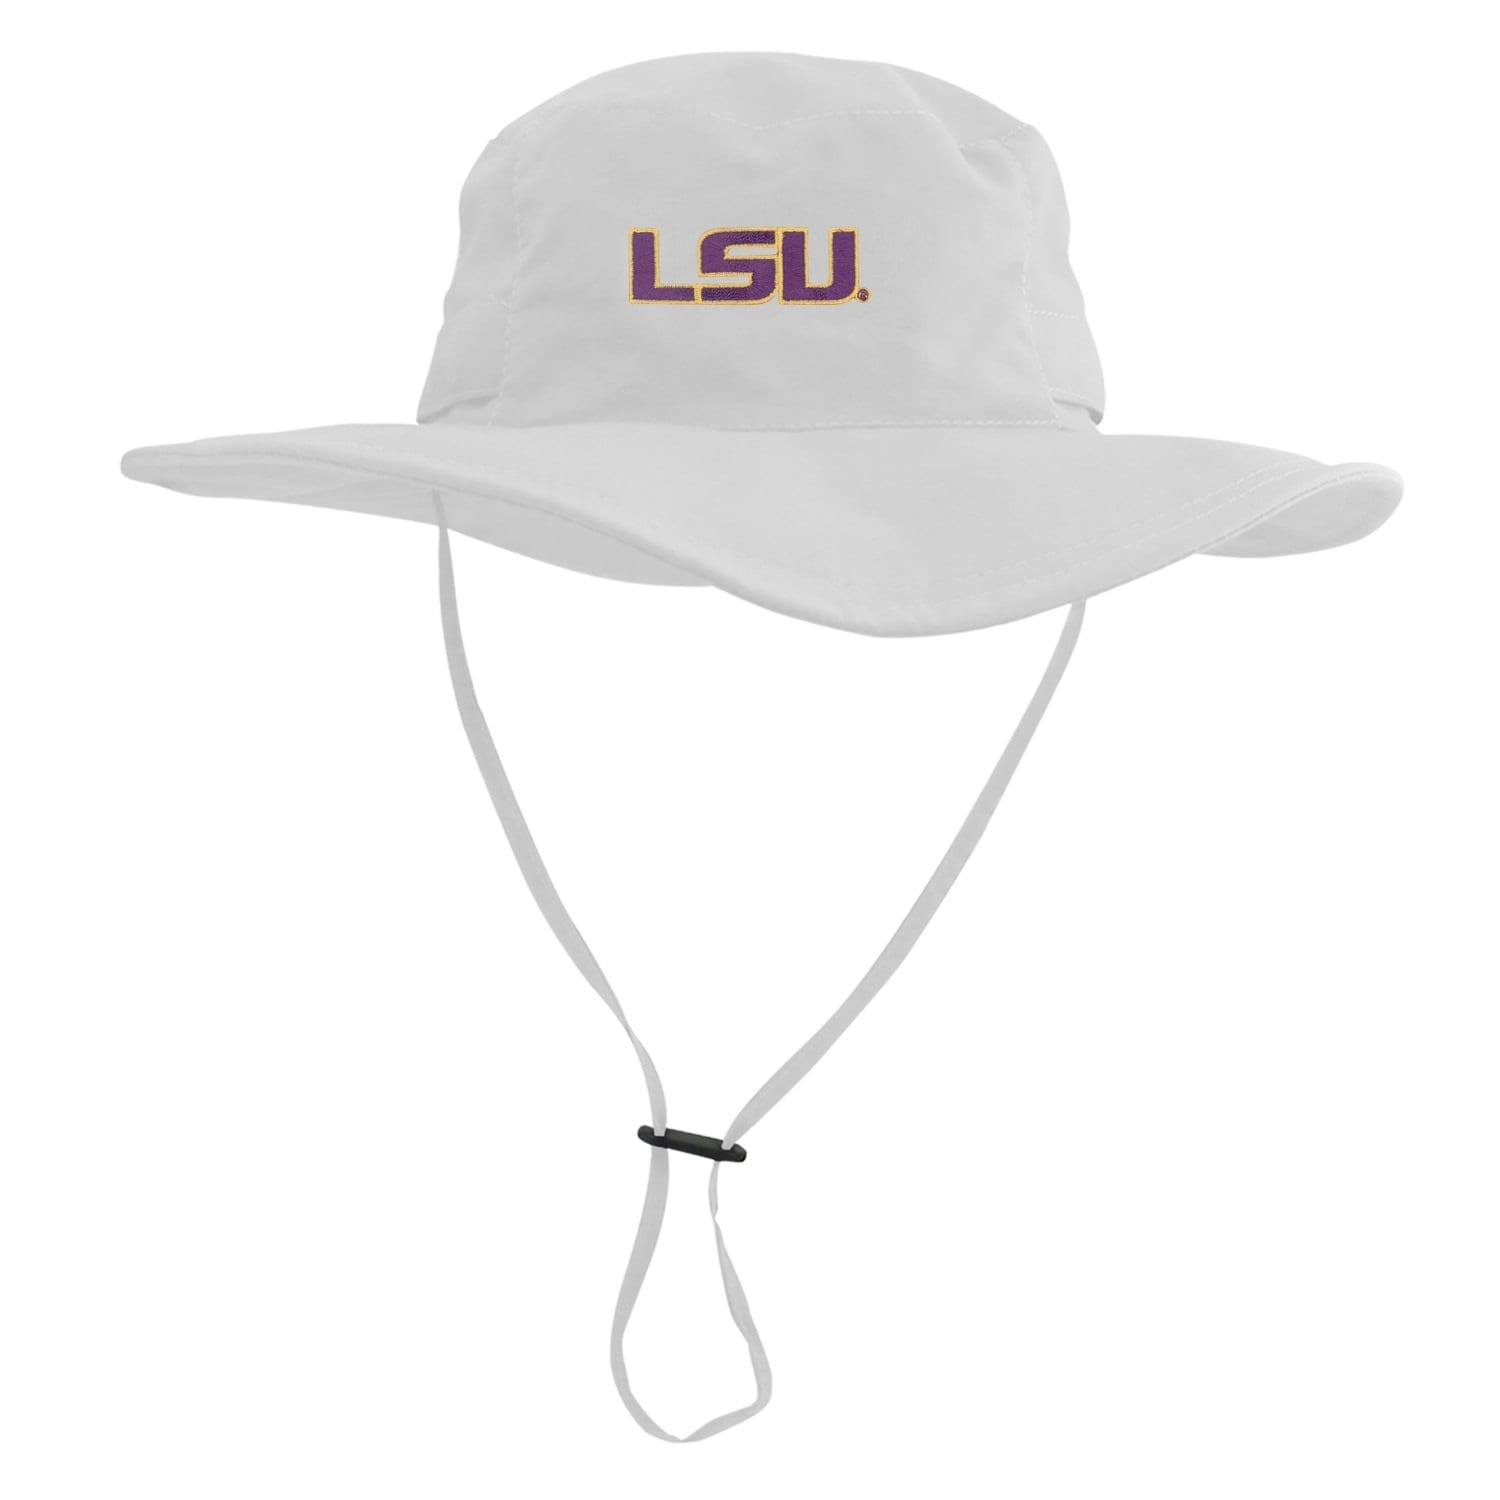 c922a9a047fa3 Shop Louisiana State University Boonie Sun Hat - Free Shipping On Orders  Over  45 - Overstock - 18687205